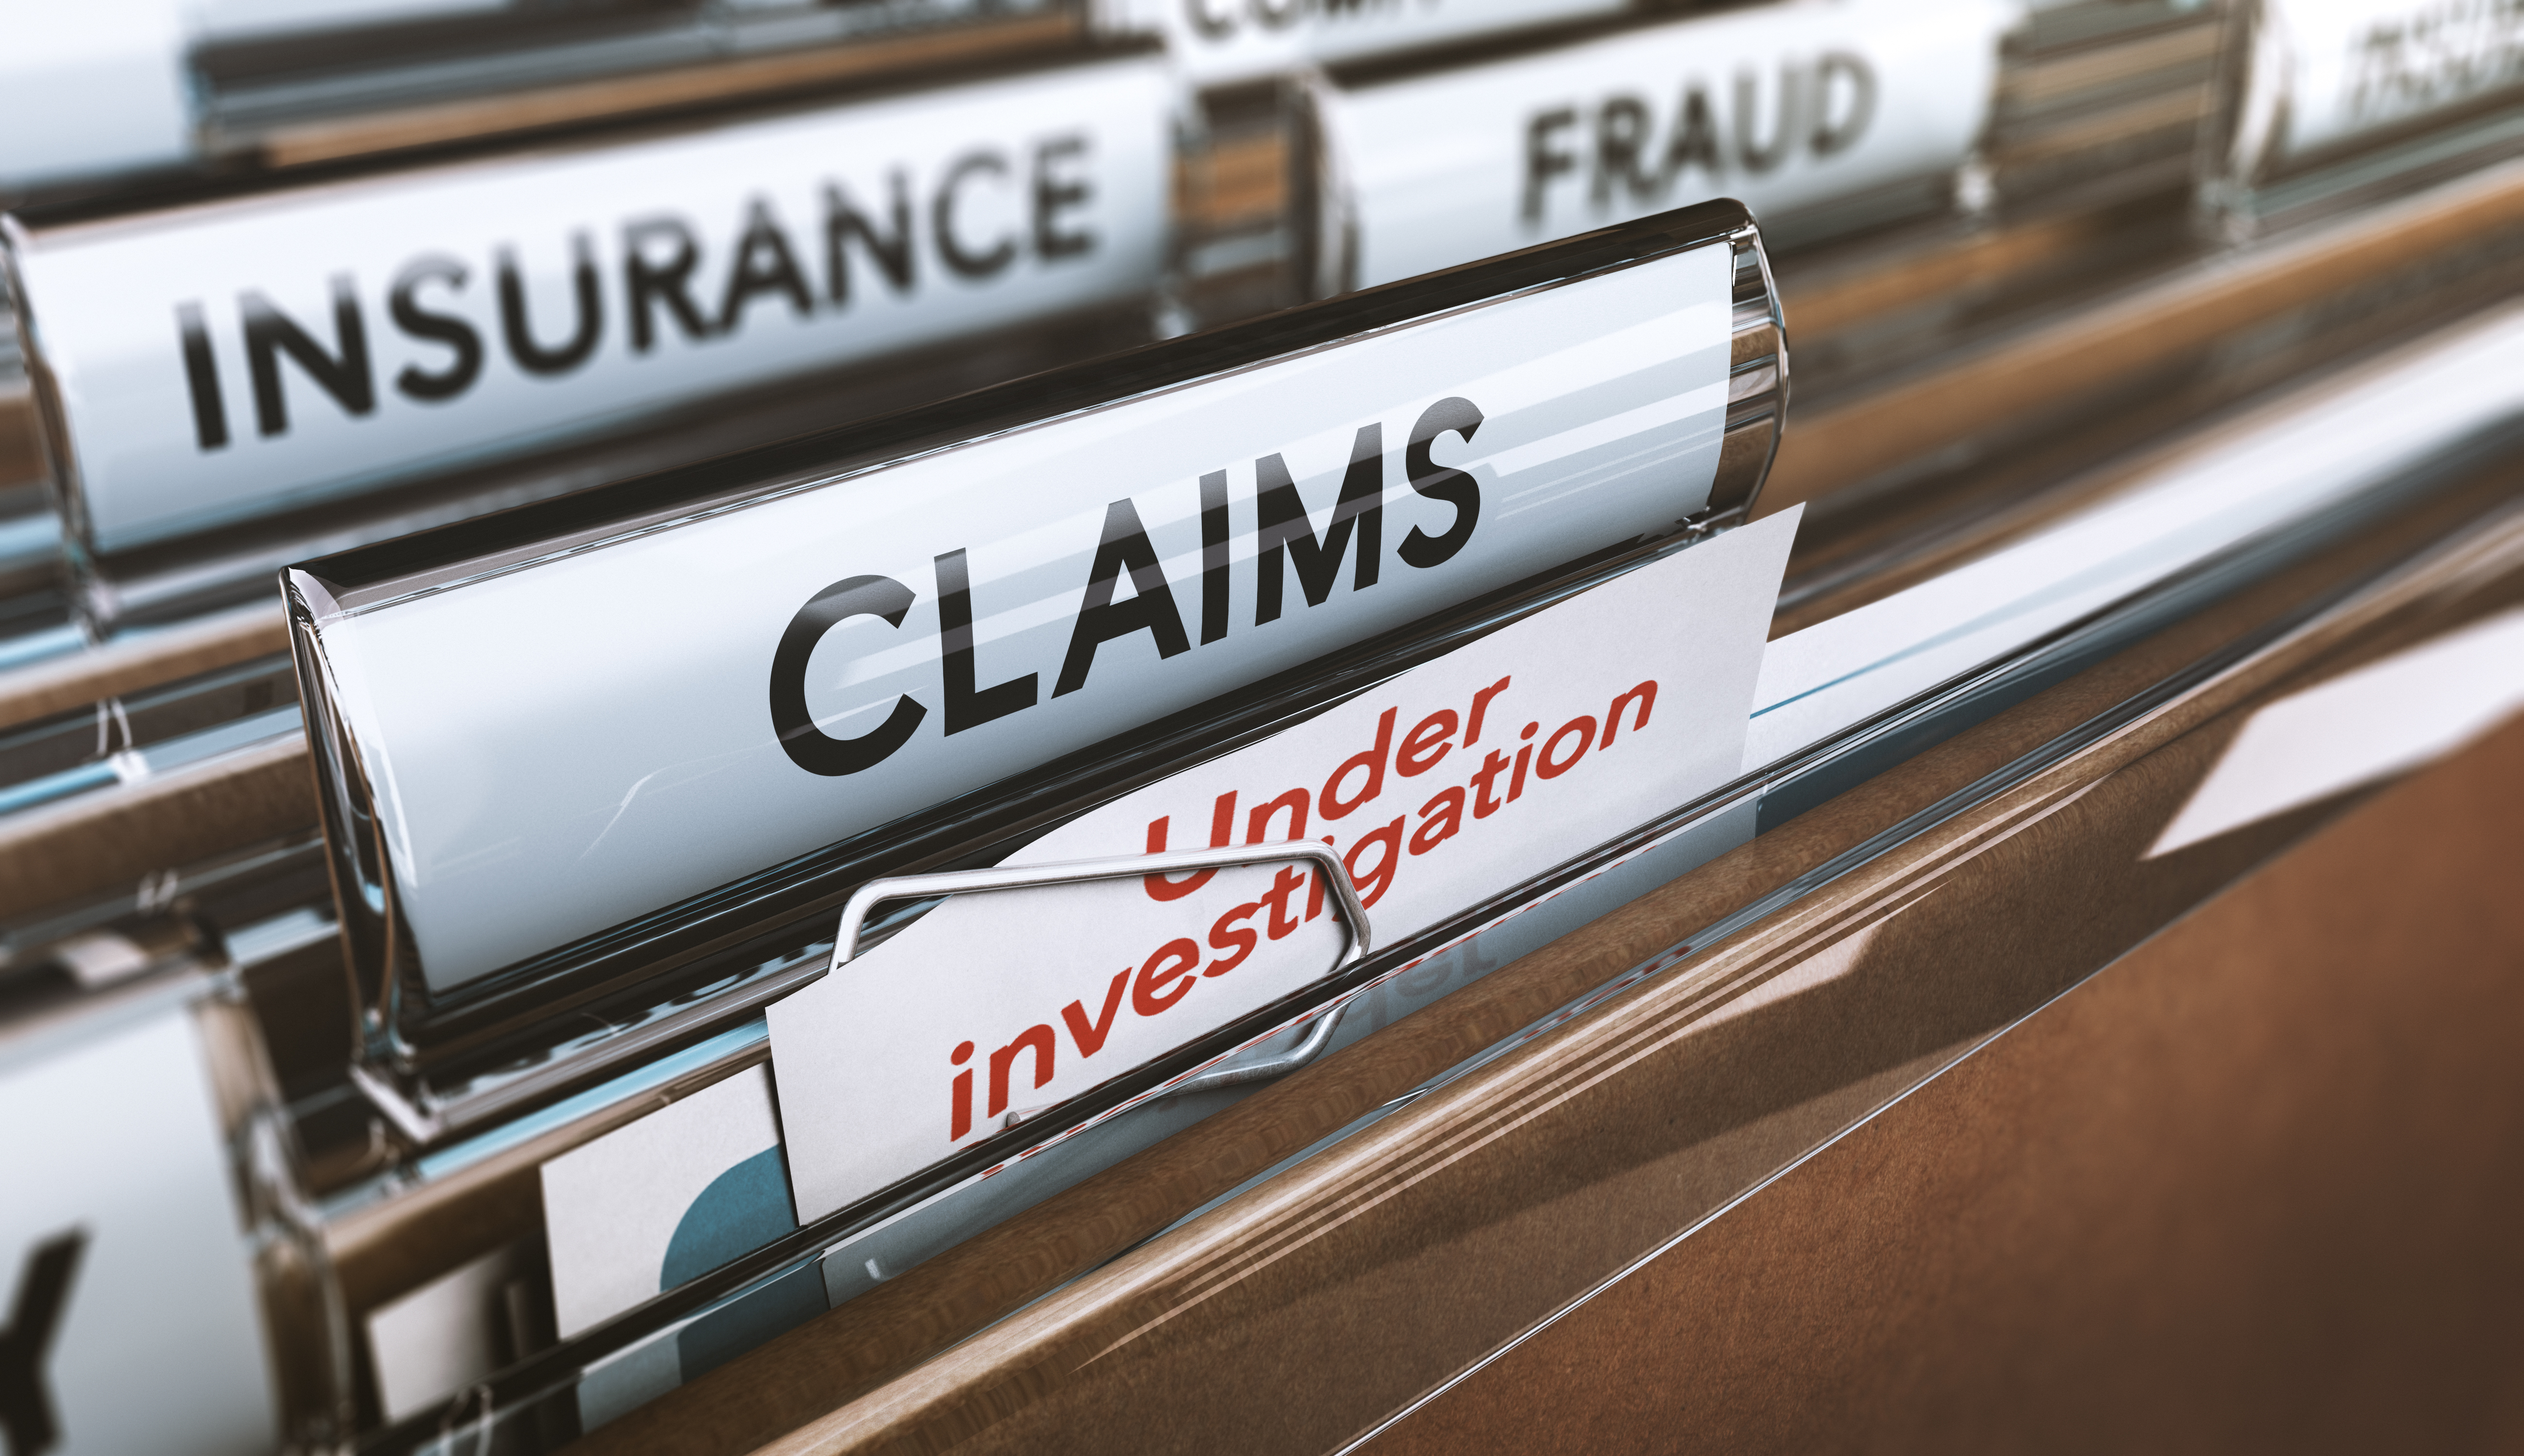 Man in purported insurance fraud claims identity theft